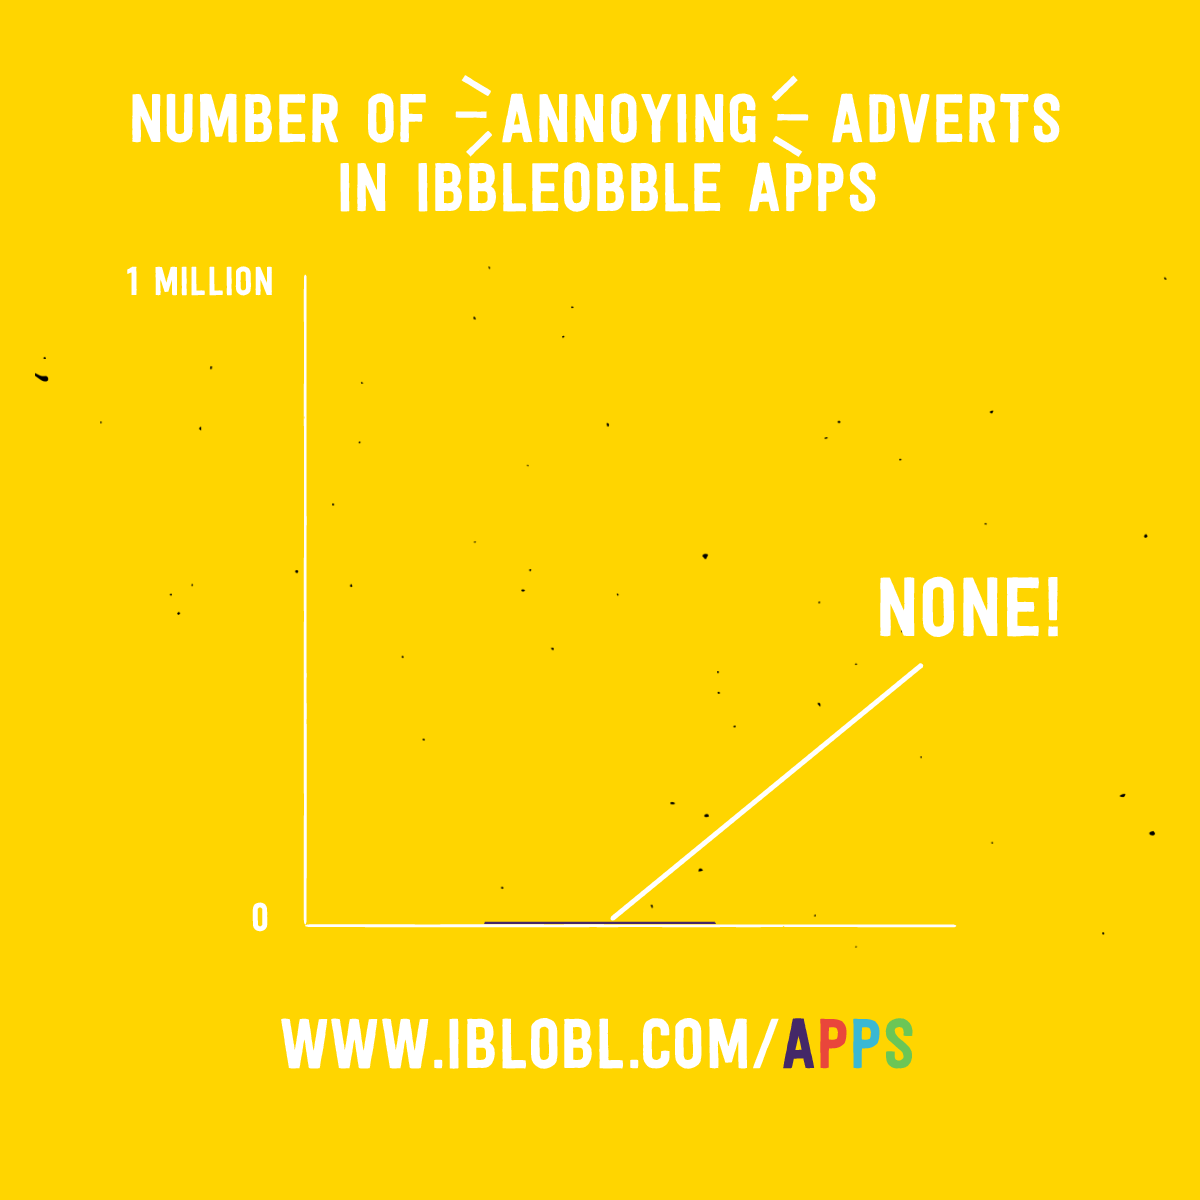 Number of adverts in Ibbleobble apps